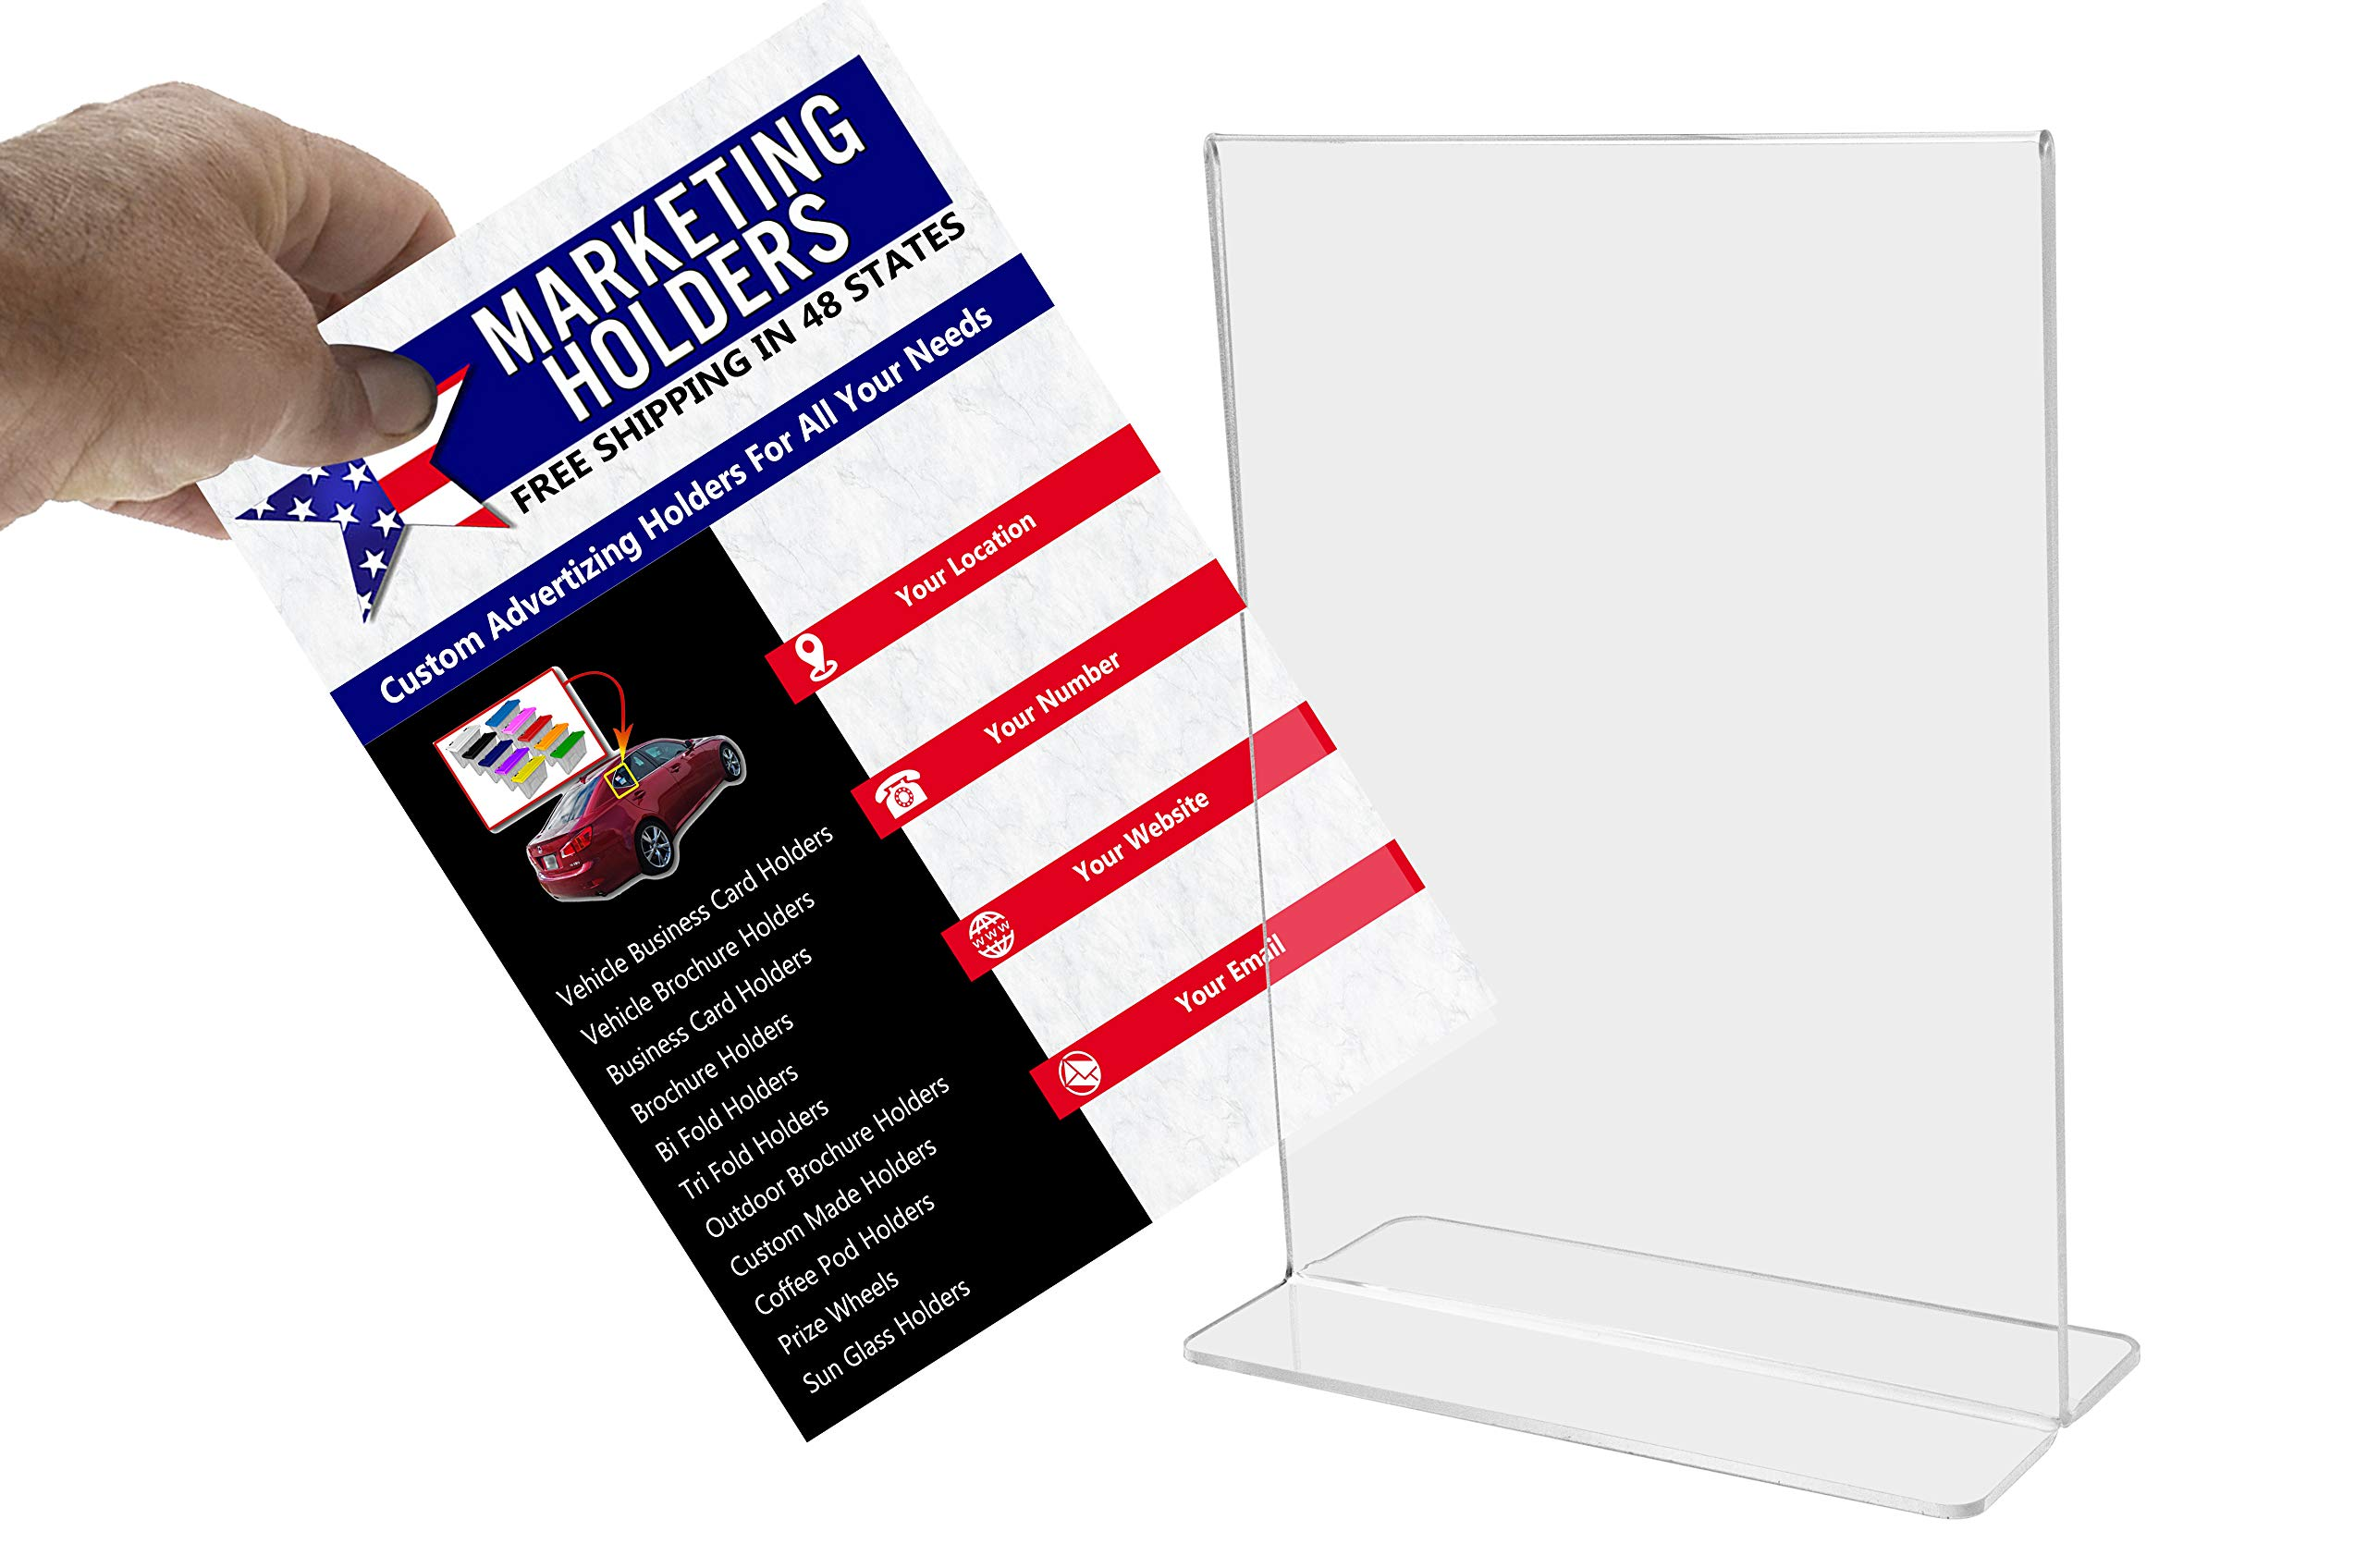 Marketing Holders Bottom Loading Flyer Frame Paper Holder Printed Material Literature Display Advertisement Holder 11''w x 14''h Pack of 30 by Marketing Holders (Image #5)